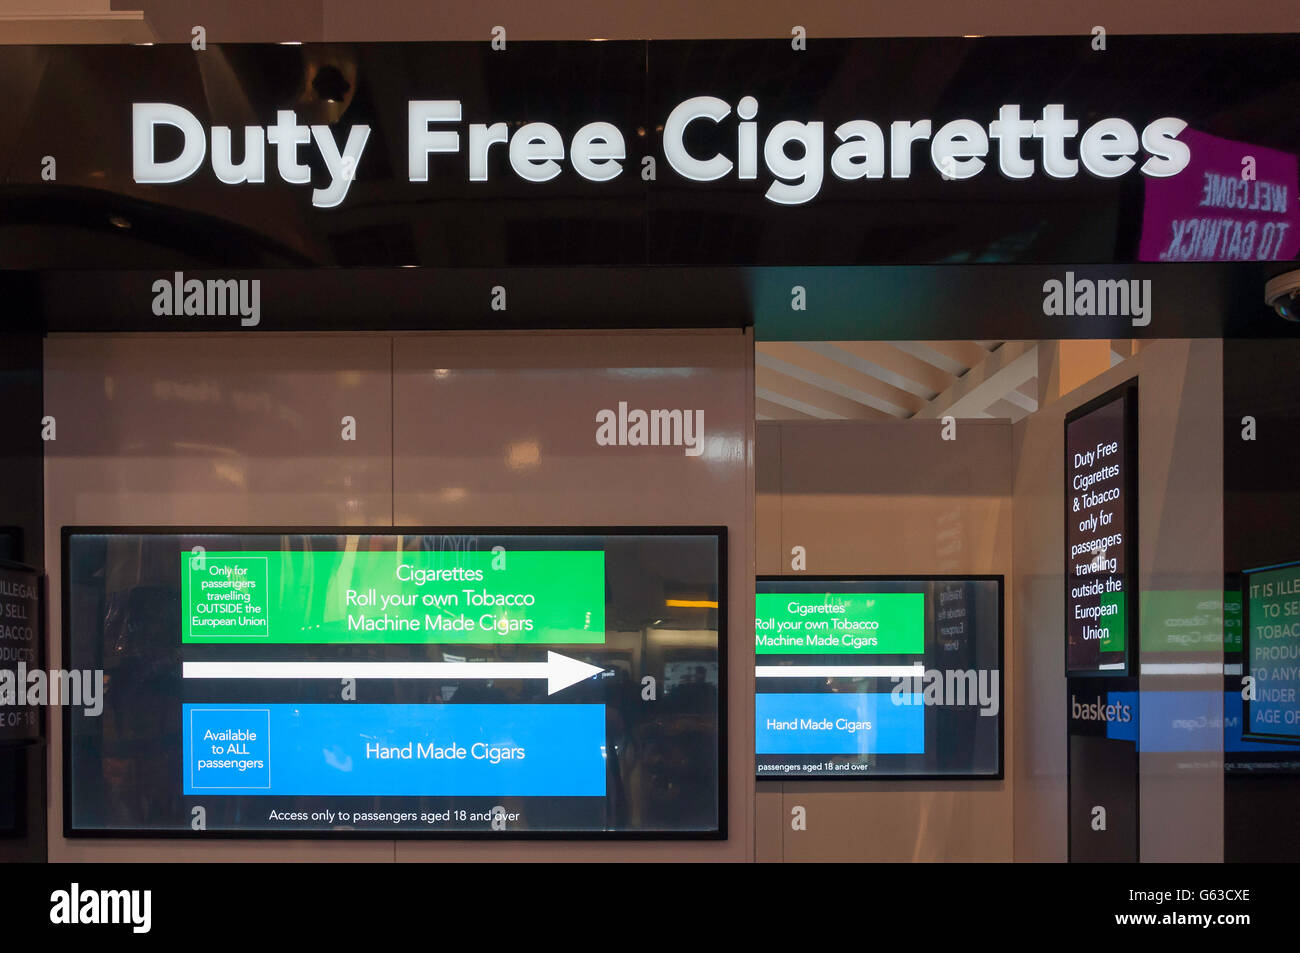 Duty free cigarettes Marlboro price Europe